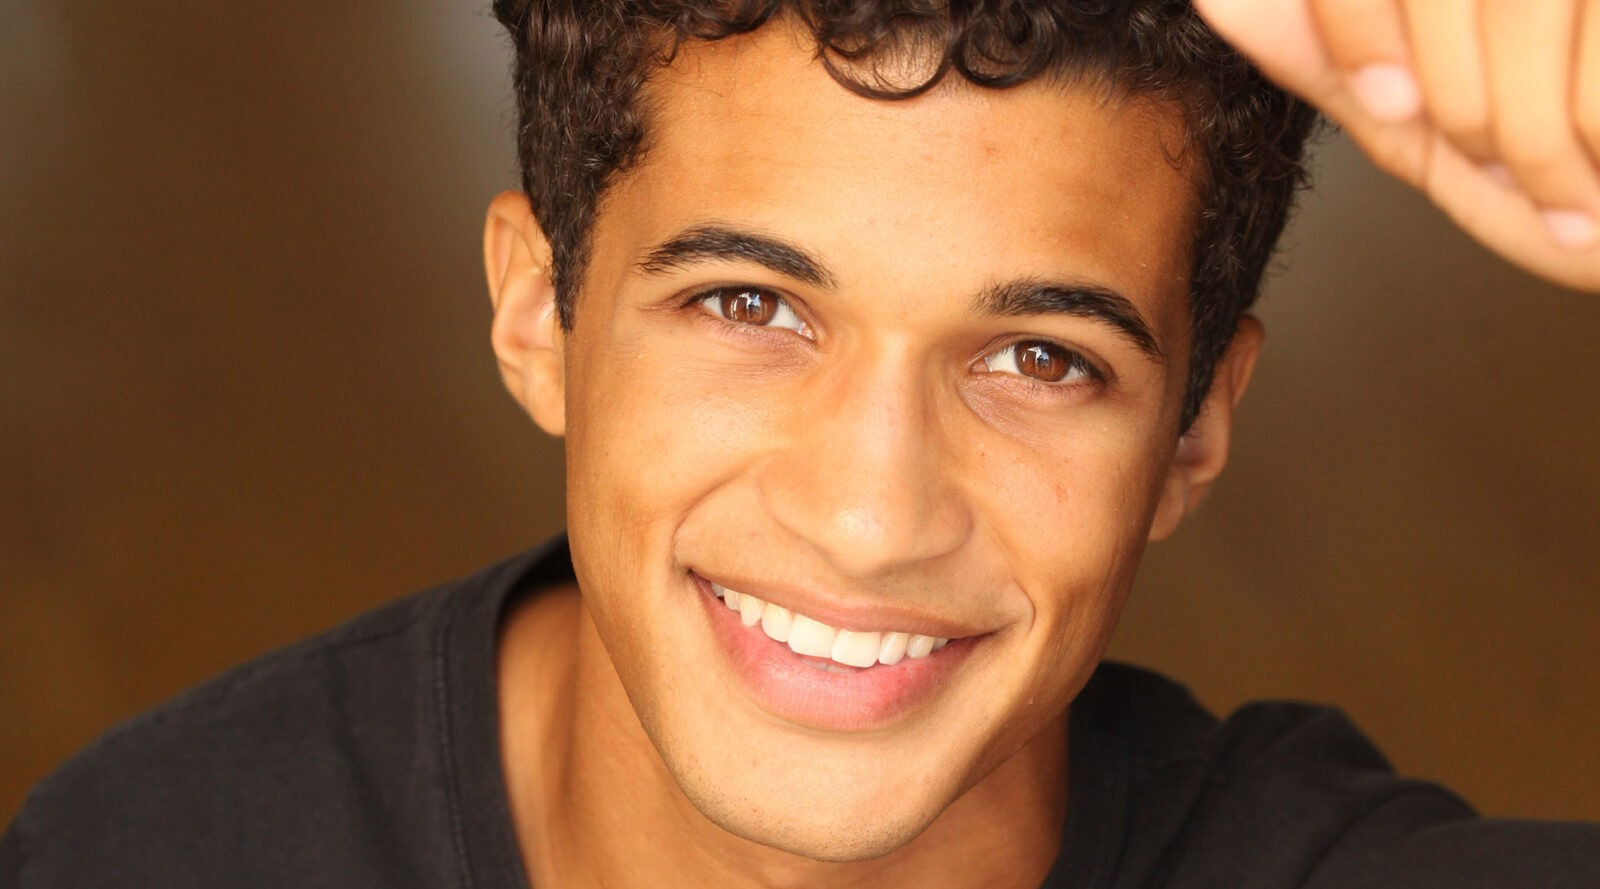 Jordan Fisher wallpaper HD download